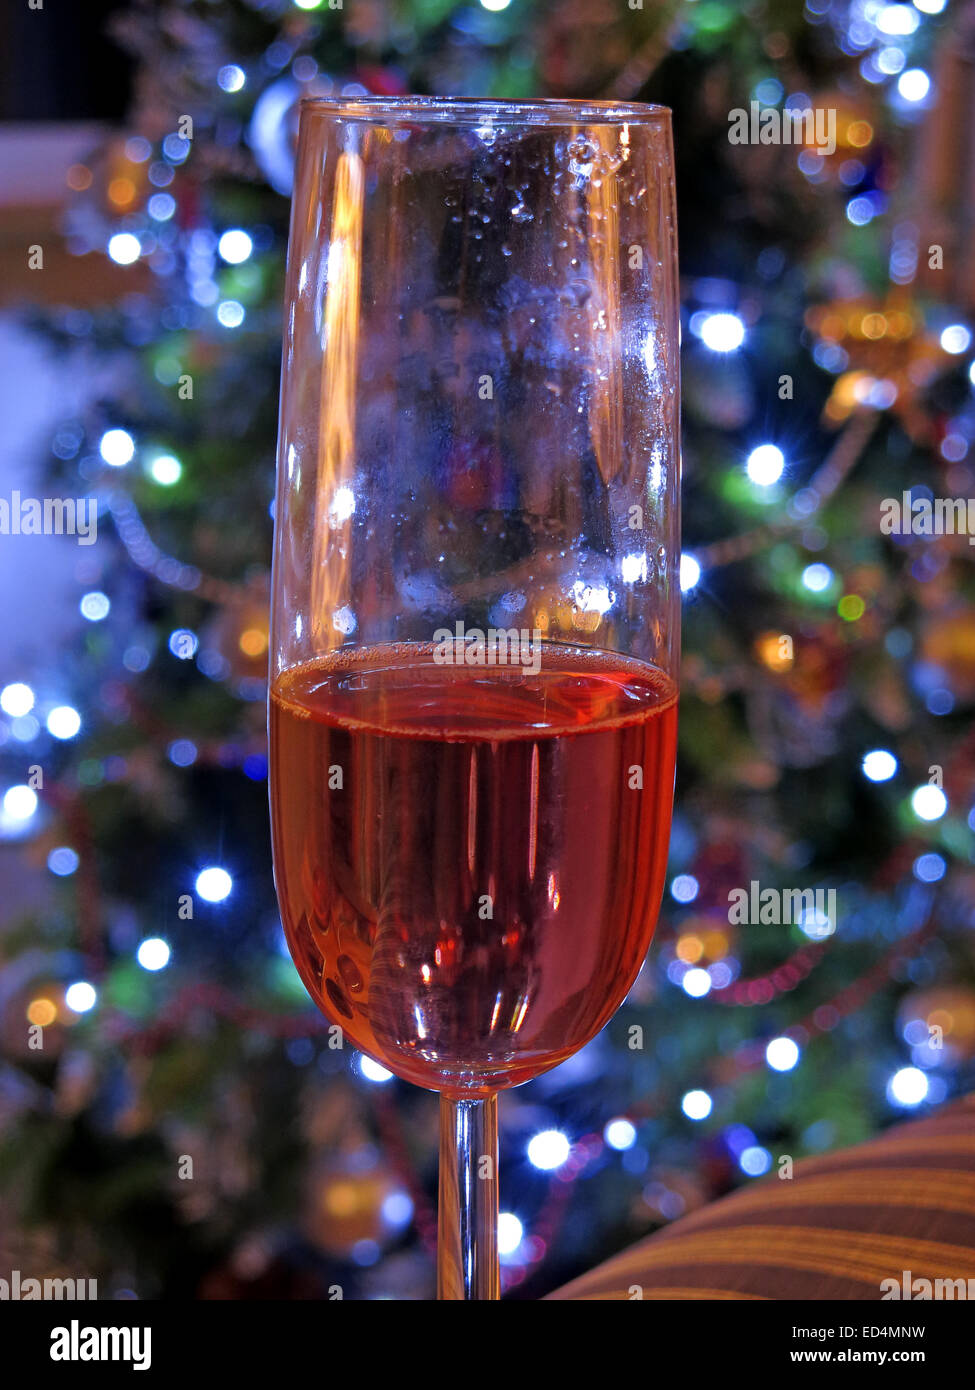 Dangers of festive drinking, one more glass of rose wine at Christmas, in front of tree of decorations - half glass - Stock Image